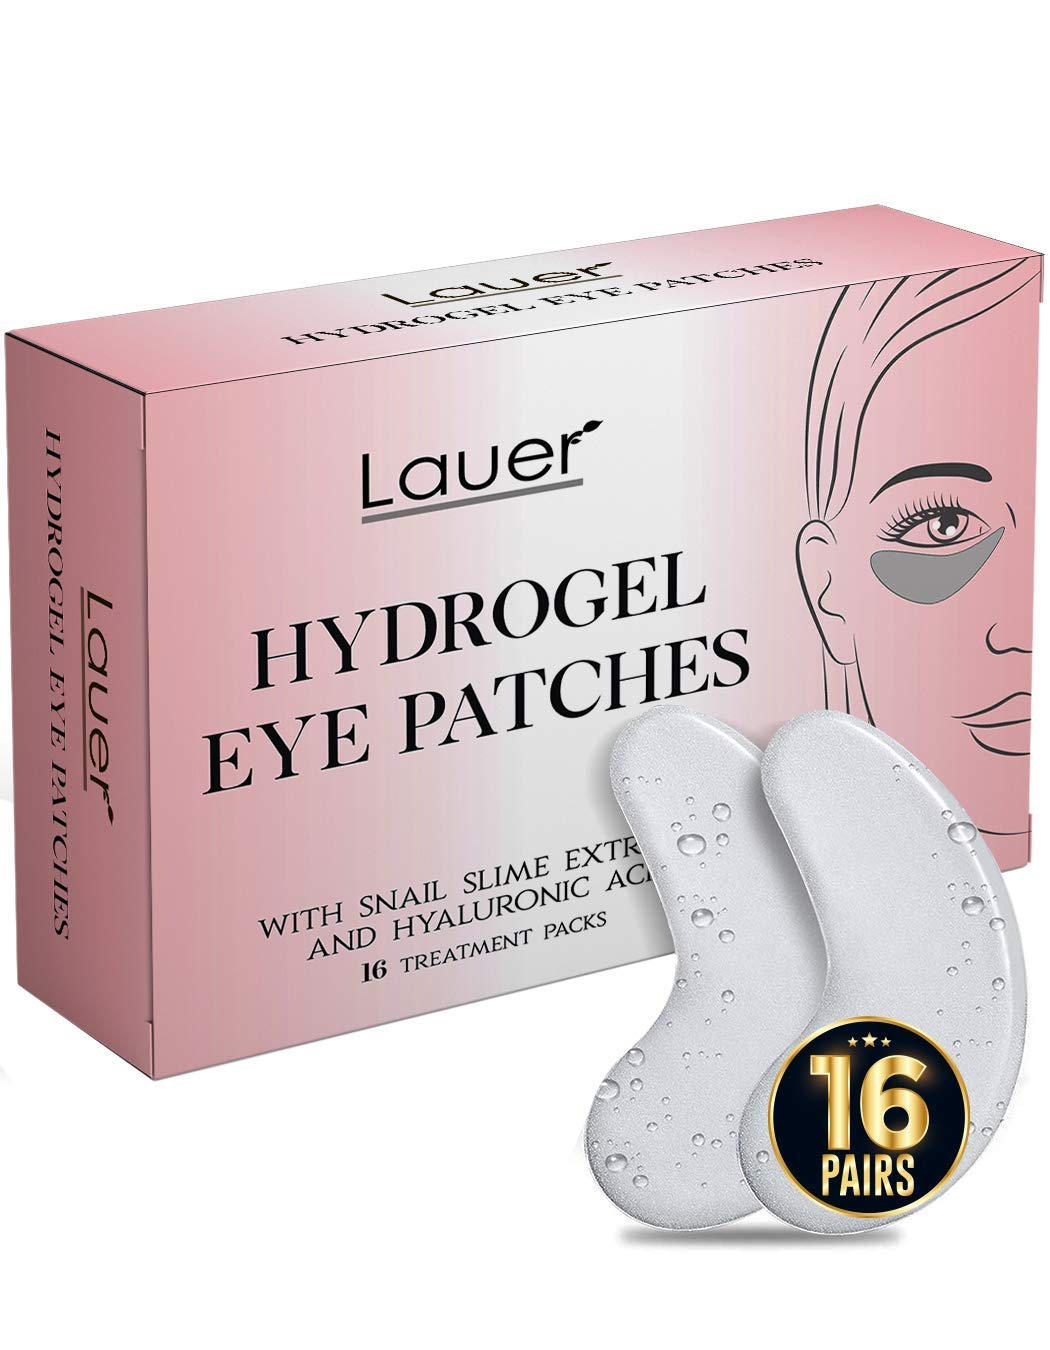 Lauer Under Eye Bags Treatment Patches  Eye Mask with Hyaluronic acid and SNAIL Slime Extract  Puffy